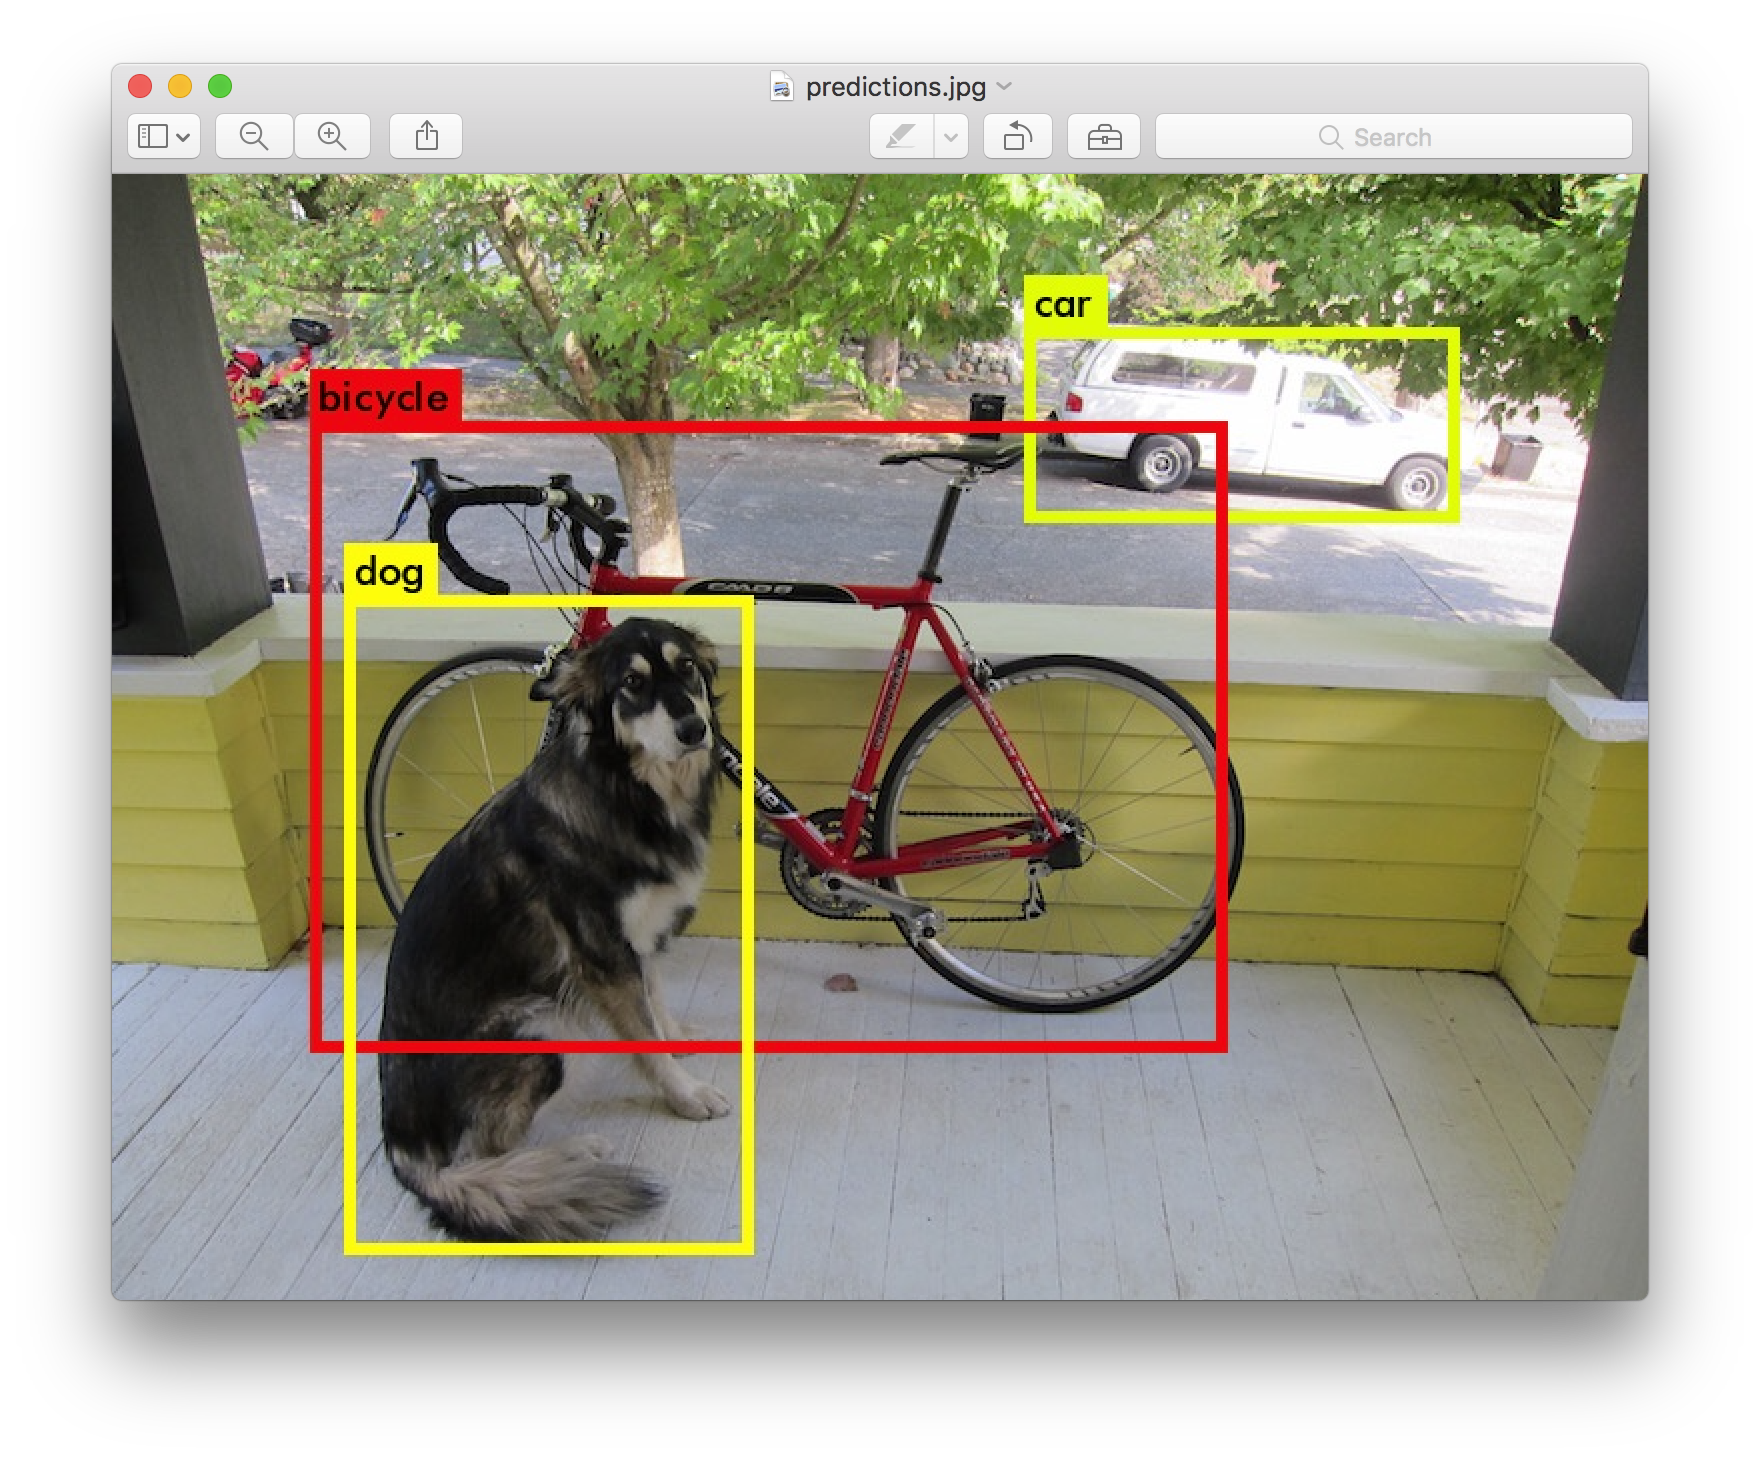 YOLO: Real-Time Object Detection | Raspberry PI | Computer vision